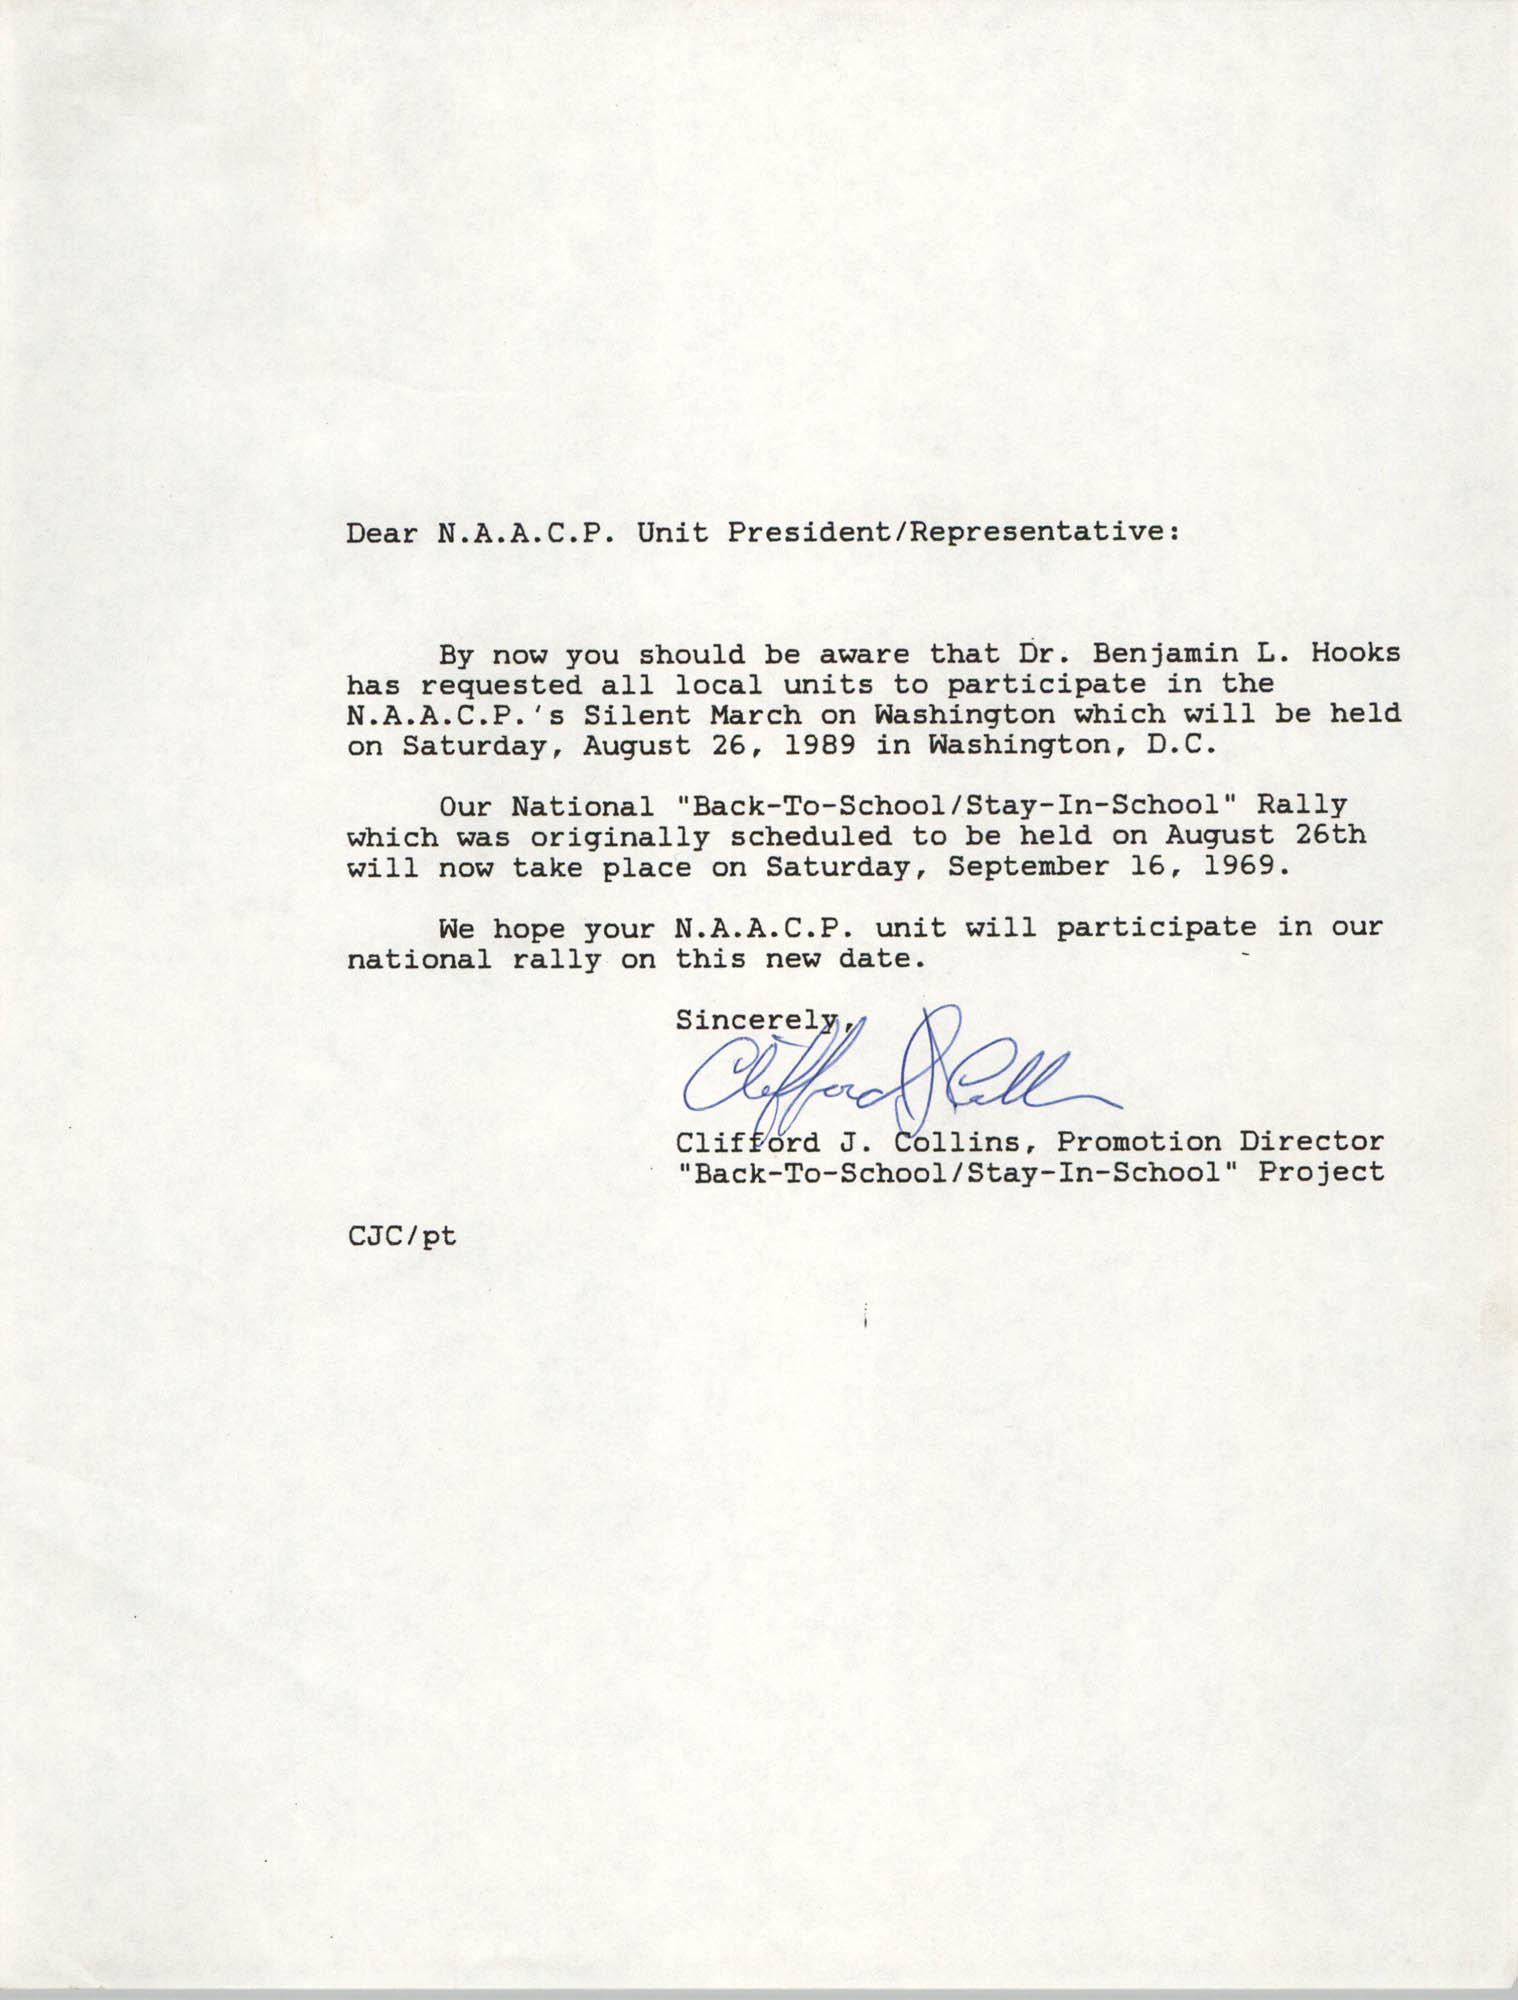 Letter from Clifford J. Collins to NAACP Unit President/Representatives